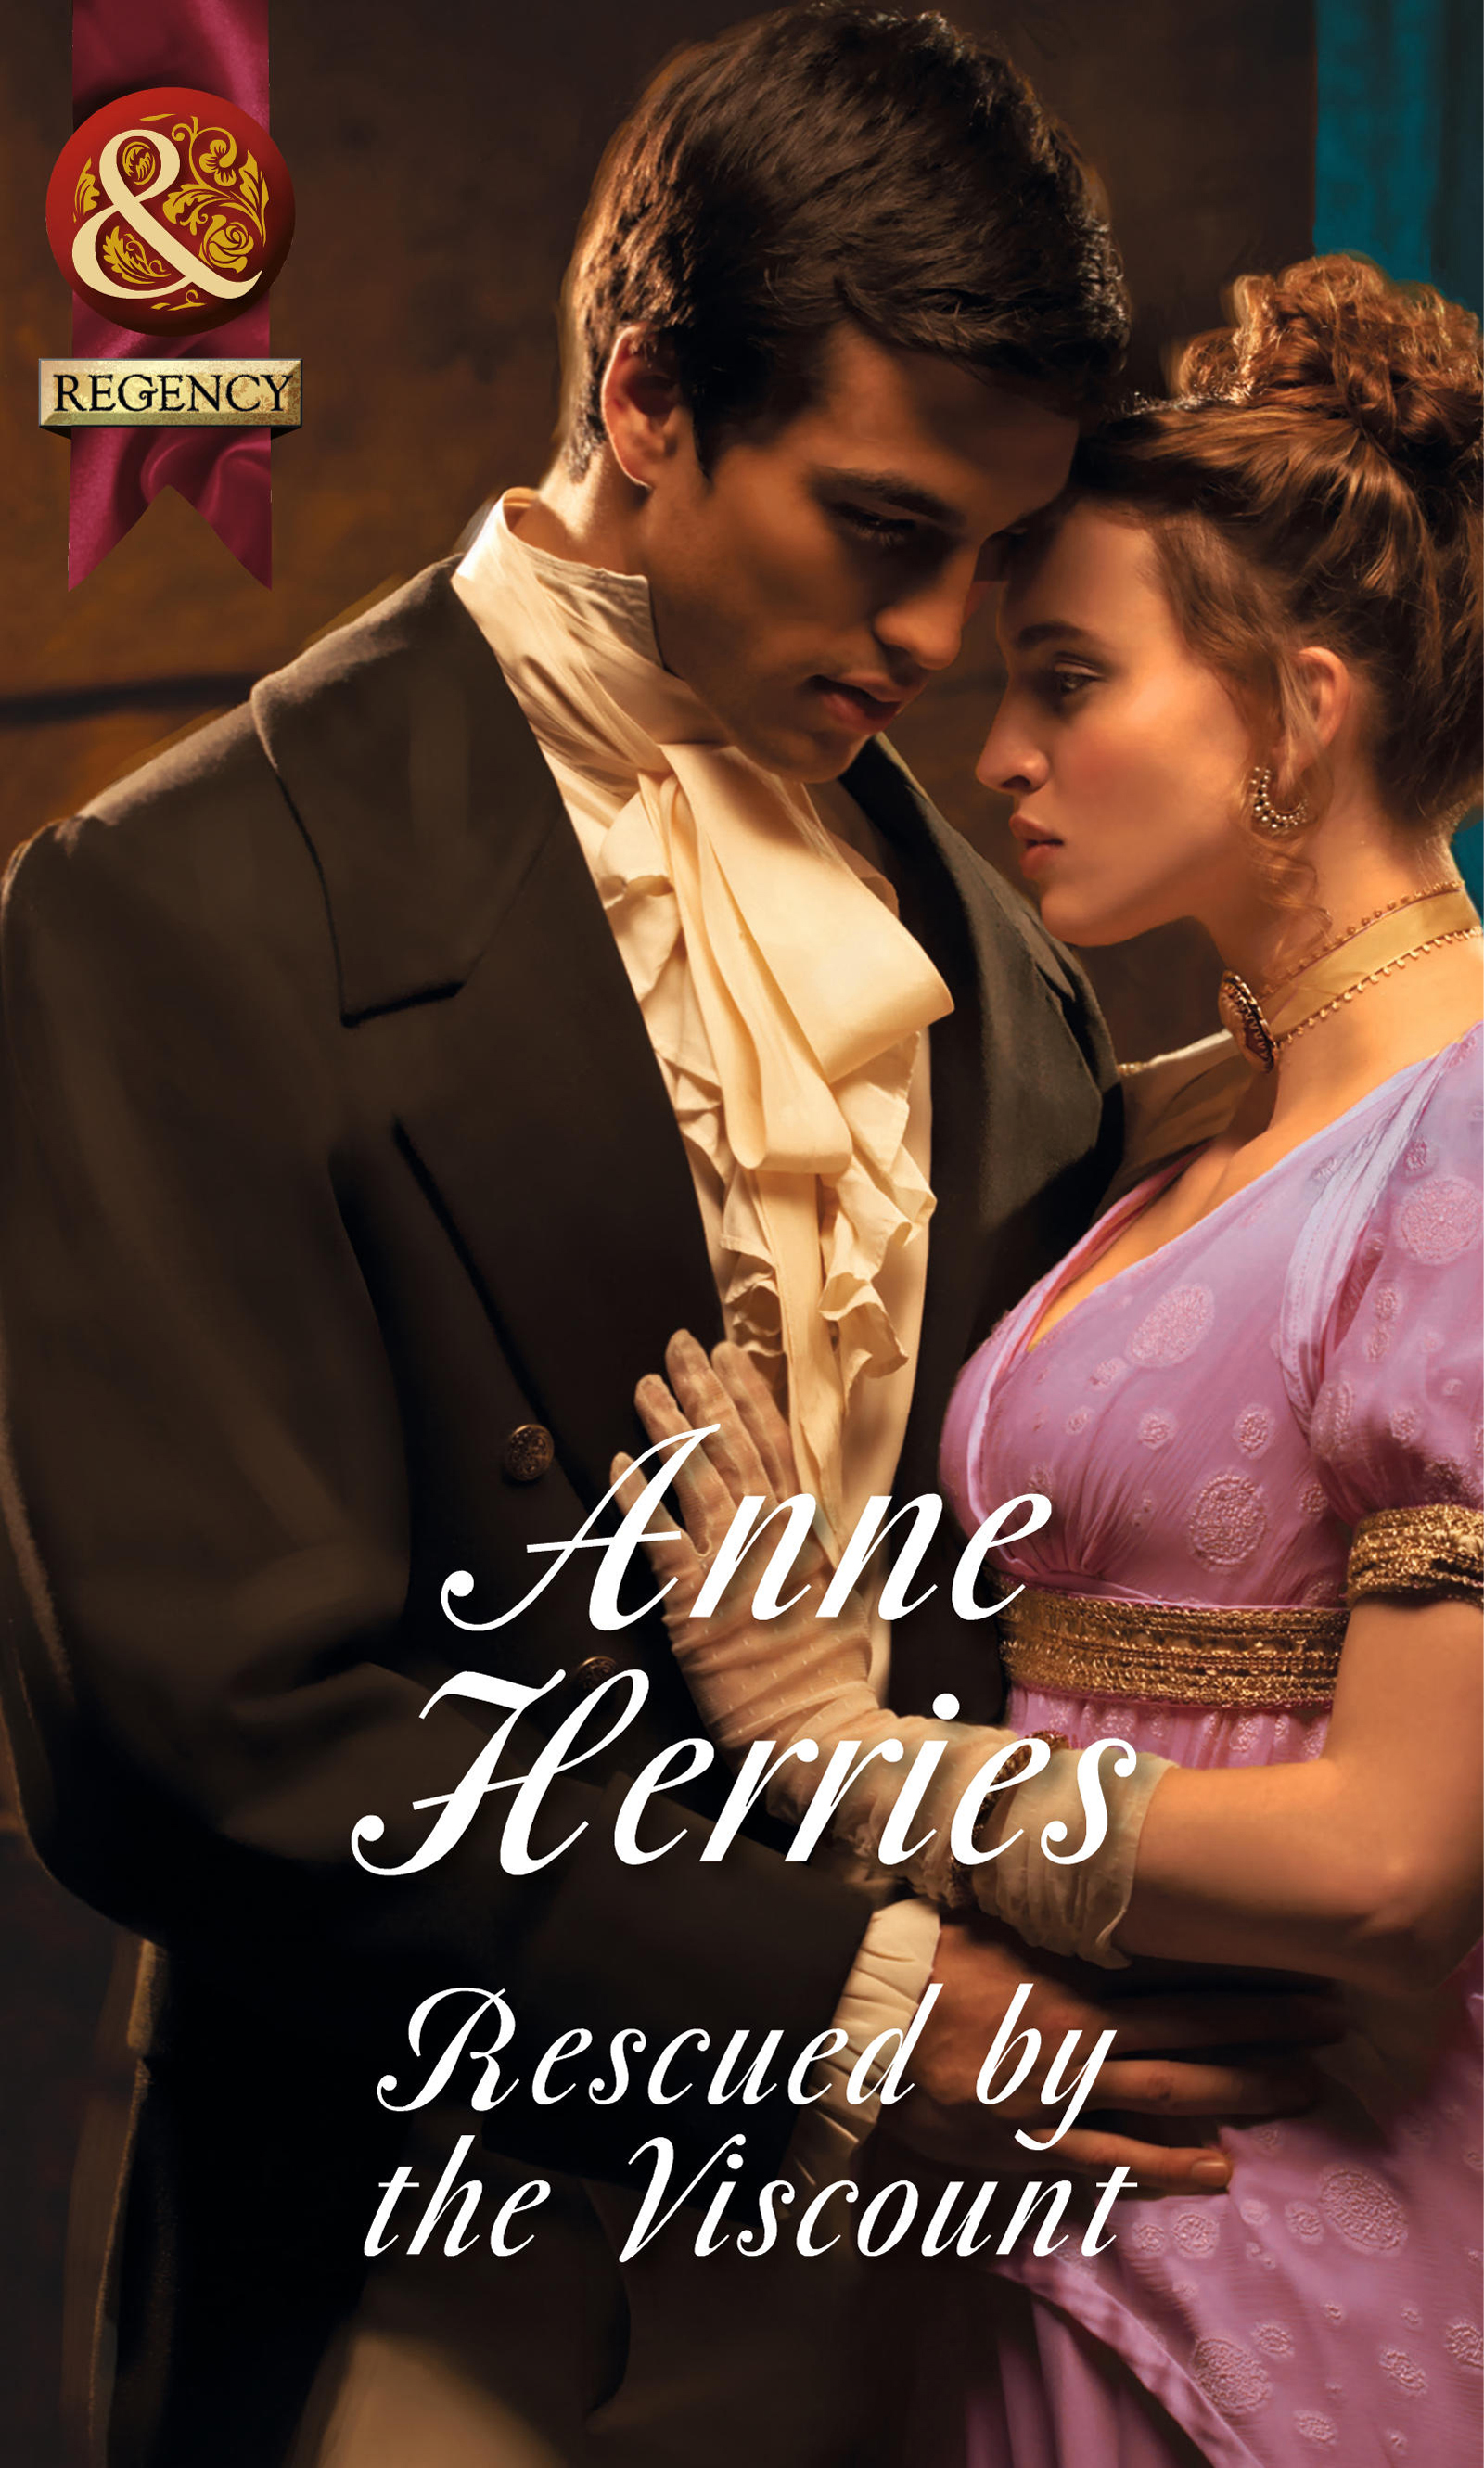 Rescued by the Viscount (Mills & Boon Historical) (Regency Brides of Convenience - Book 1)